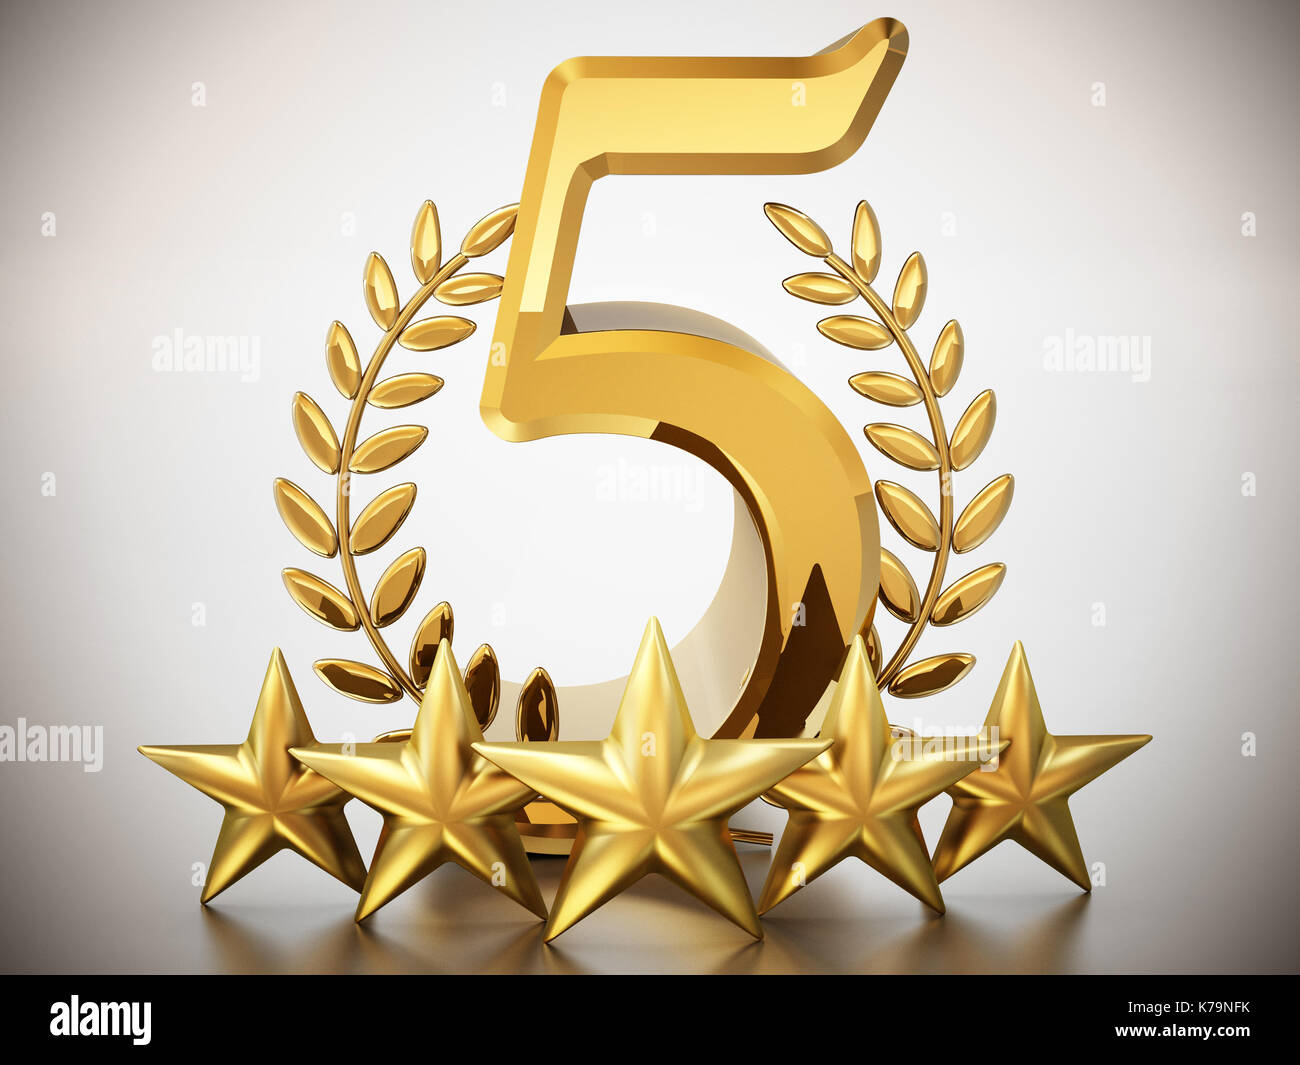 Number 5, stars and laurels isolated on white background. 3D illustration. - Stock Image